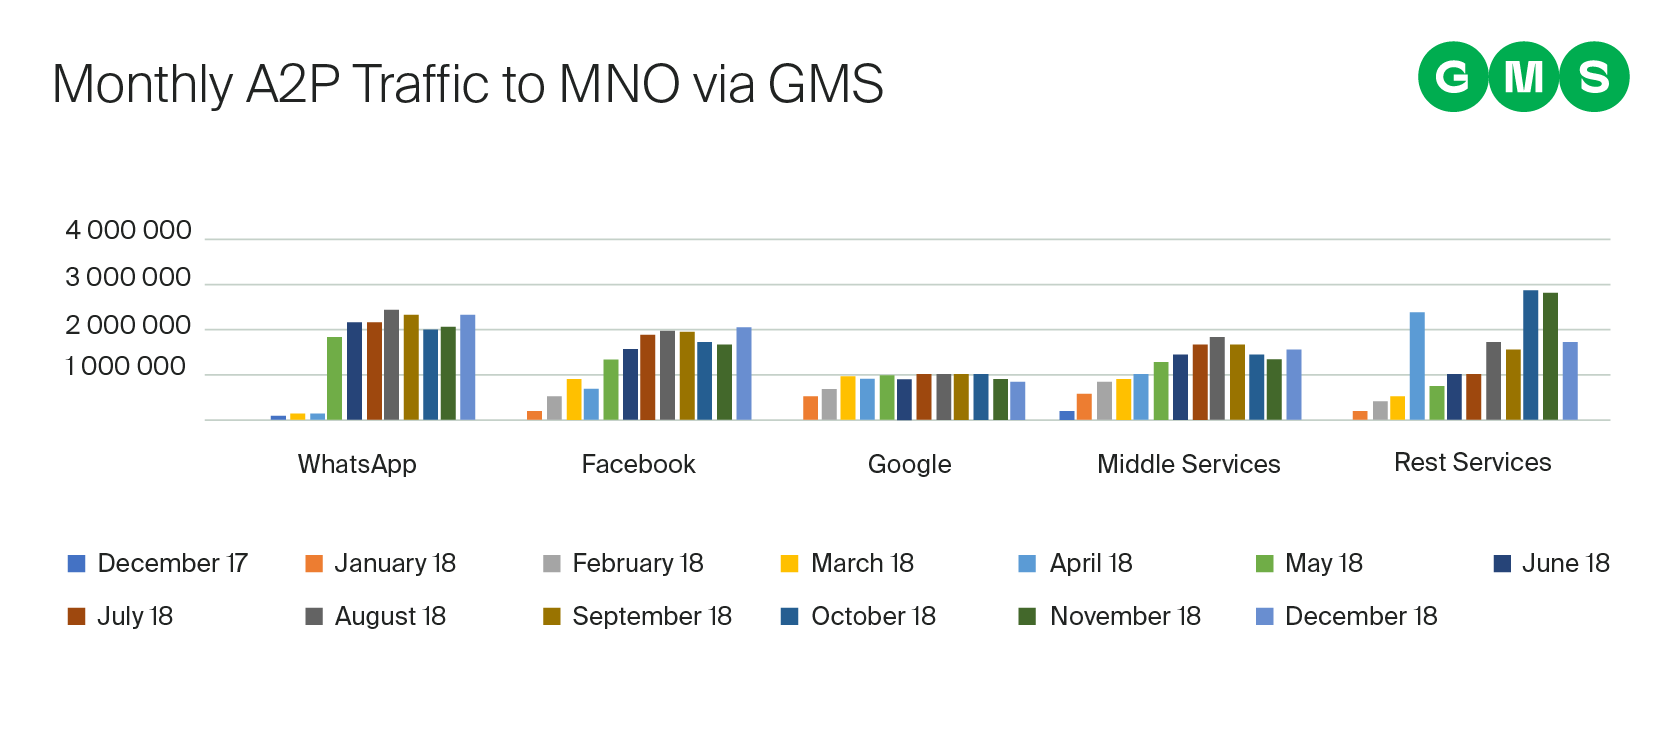 Typical monthly MNO A2P traffic from GMS